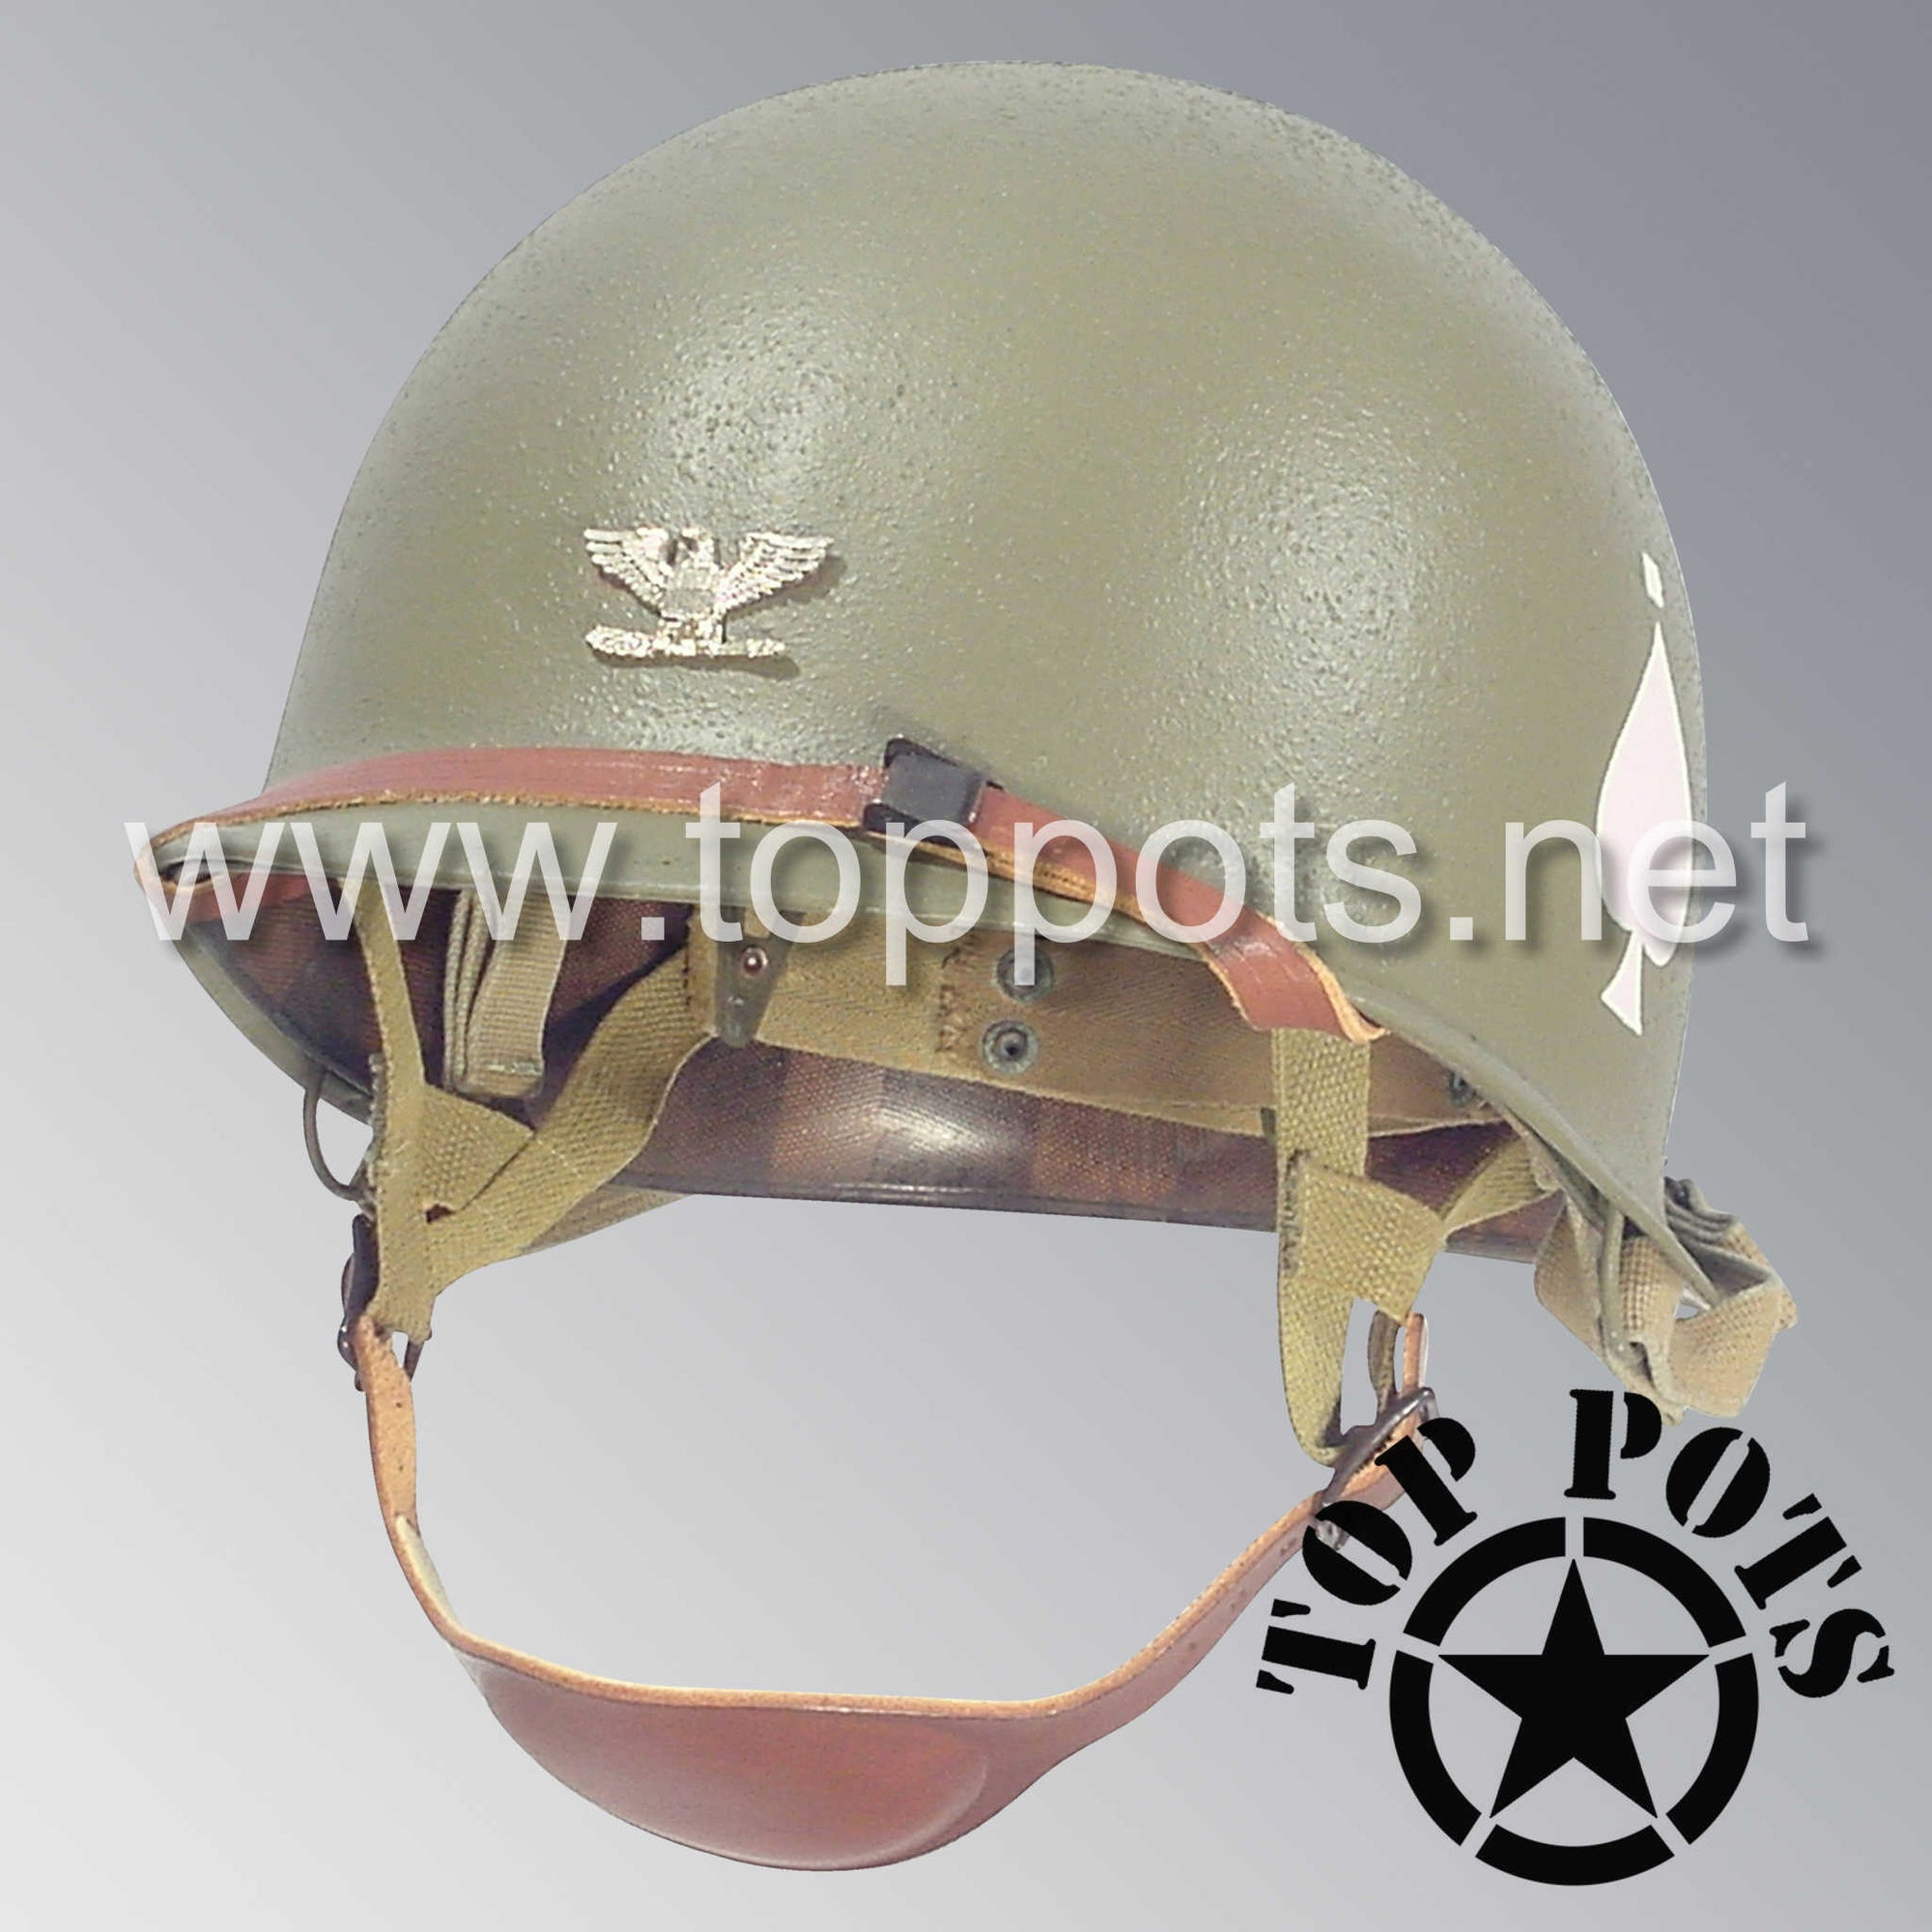 Image 1 of WWII US Army Restored Original M2 Paratrooper Airborne Helmet D Bale Shell and Liner with 506th PIR HQ Battalion Officer Metal Colonel Rank Emblem